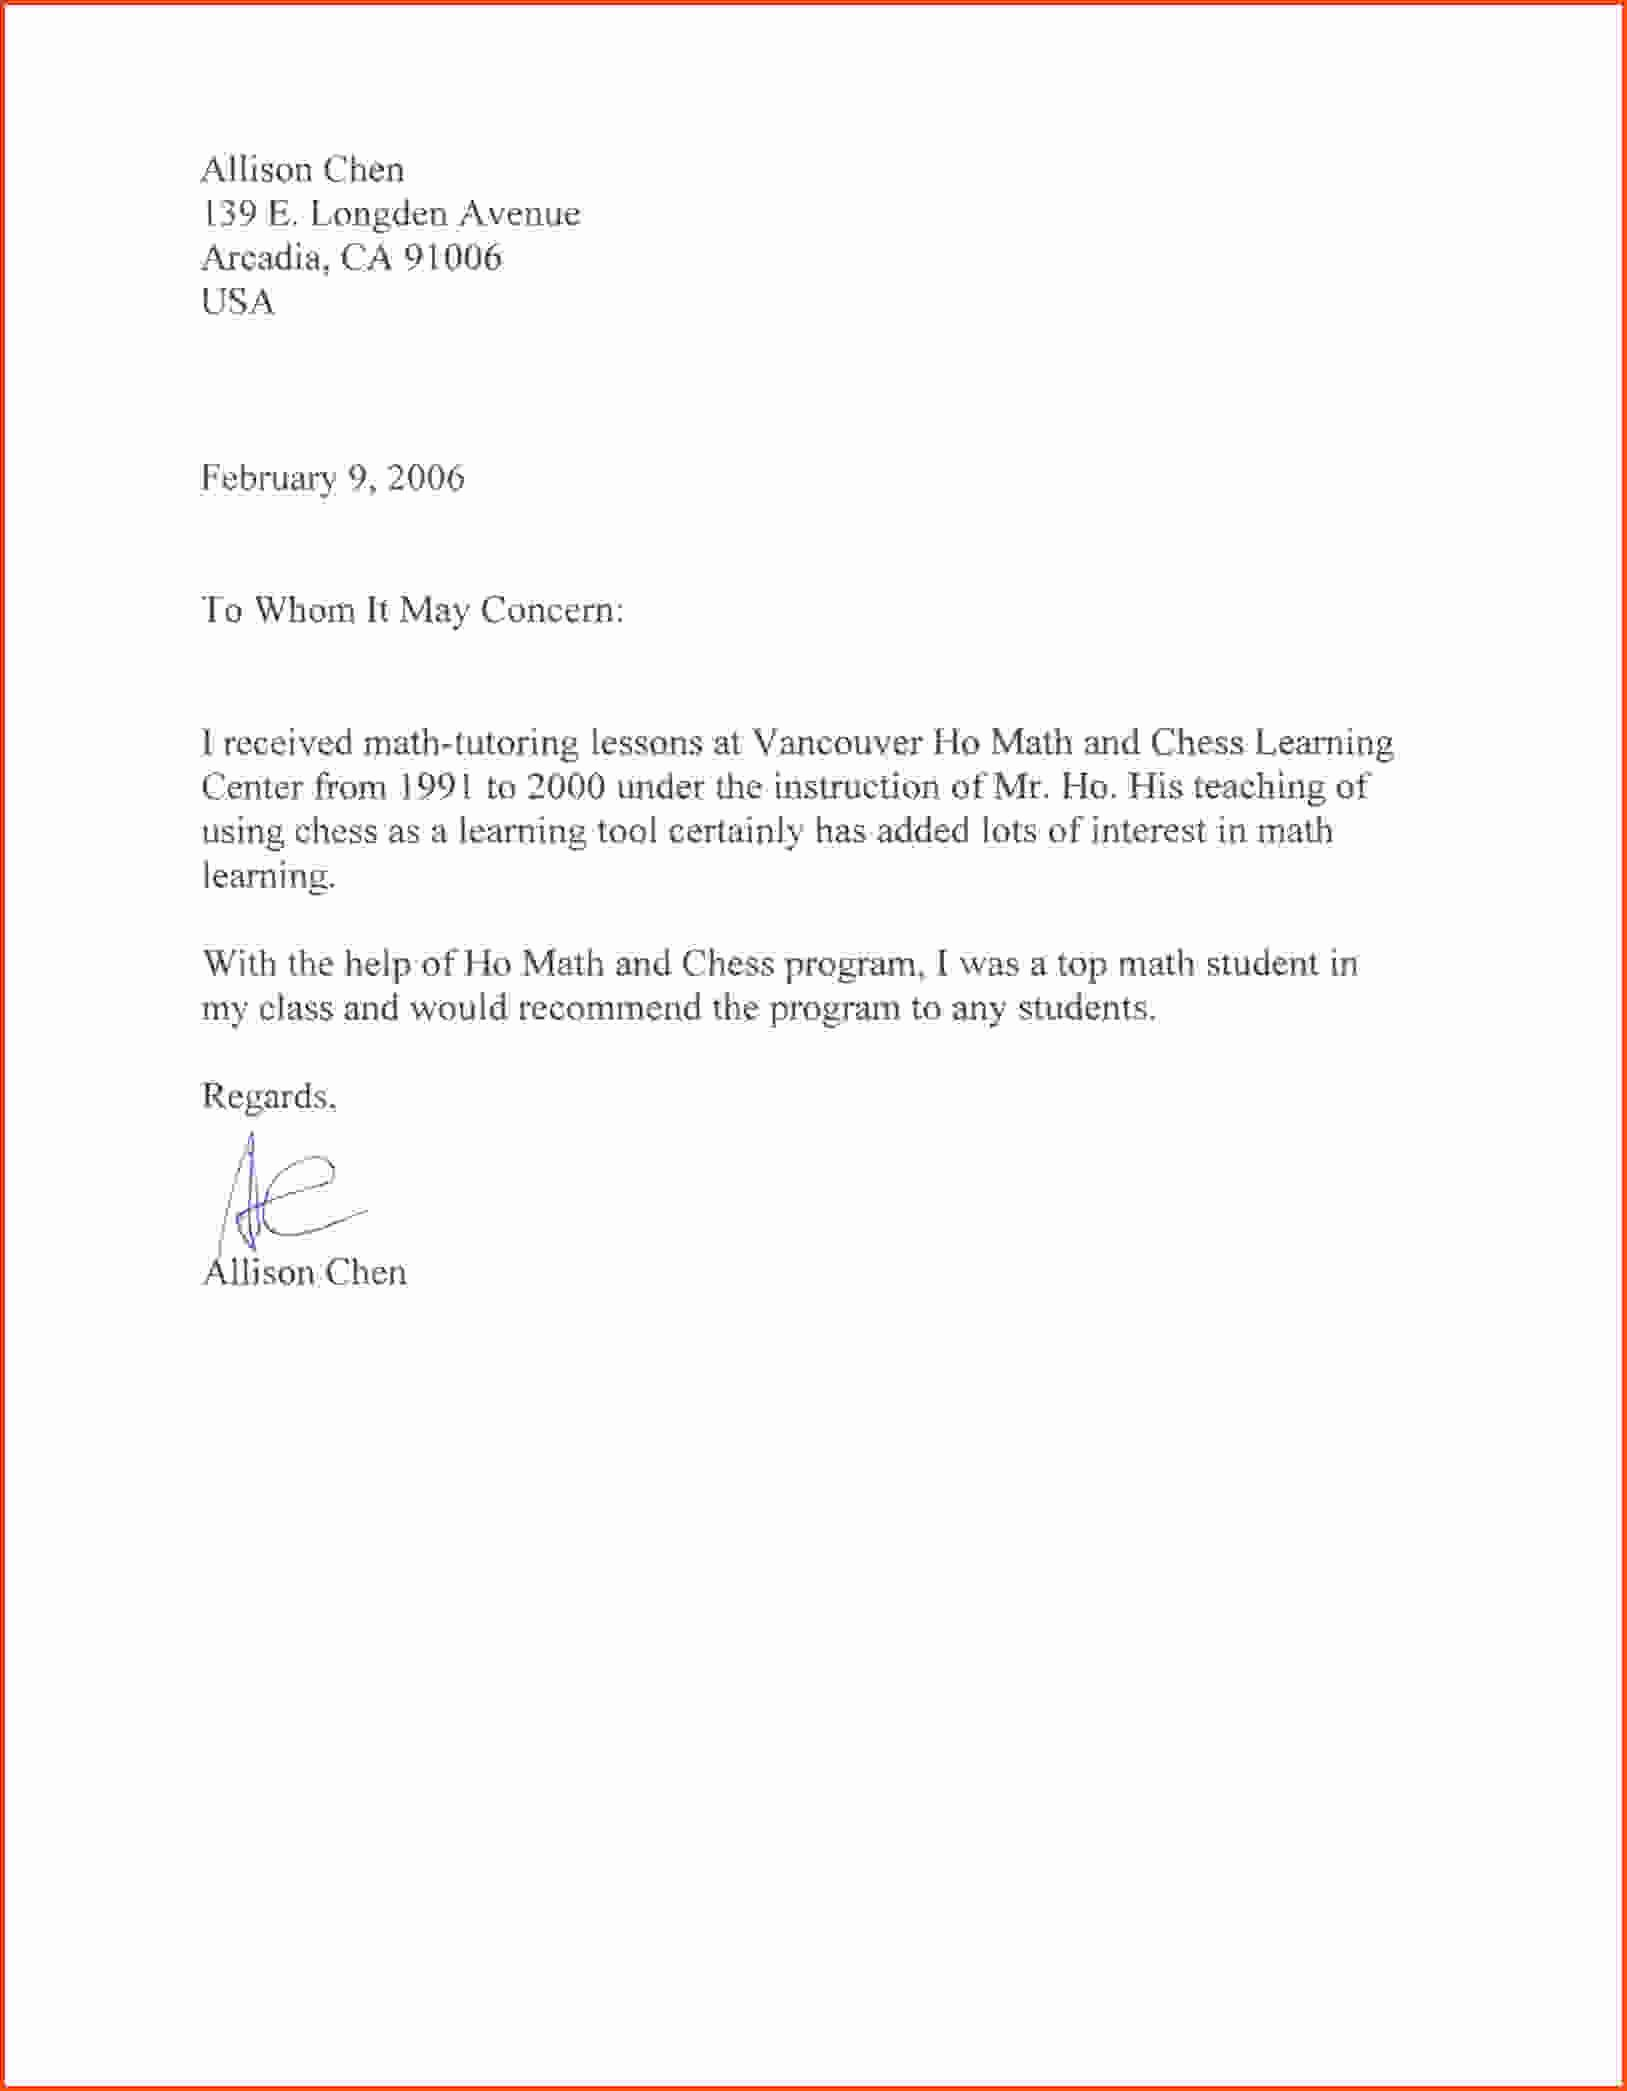 Generic Reference Letter Sample Luxury 11 Sample Of Reference Letter for Student